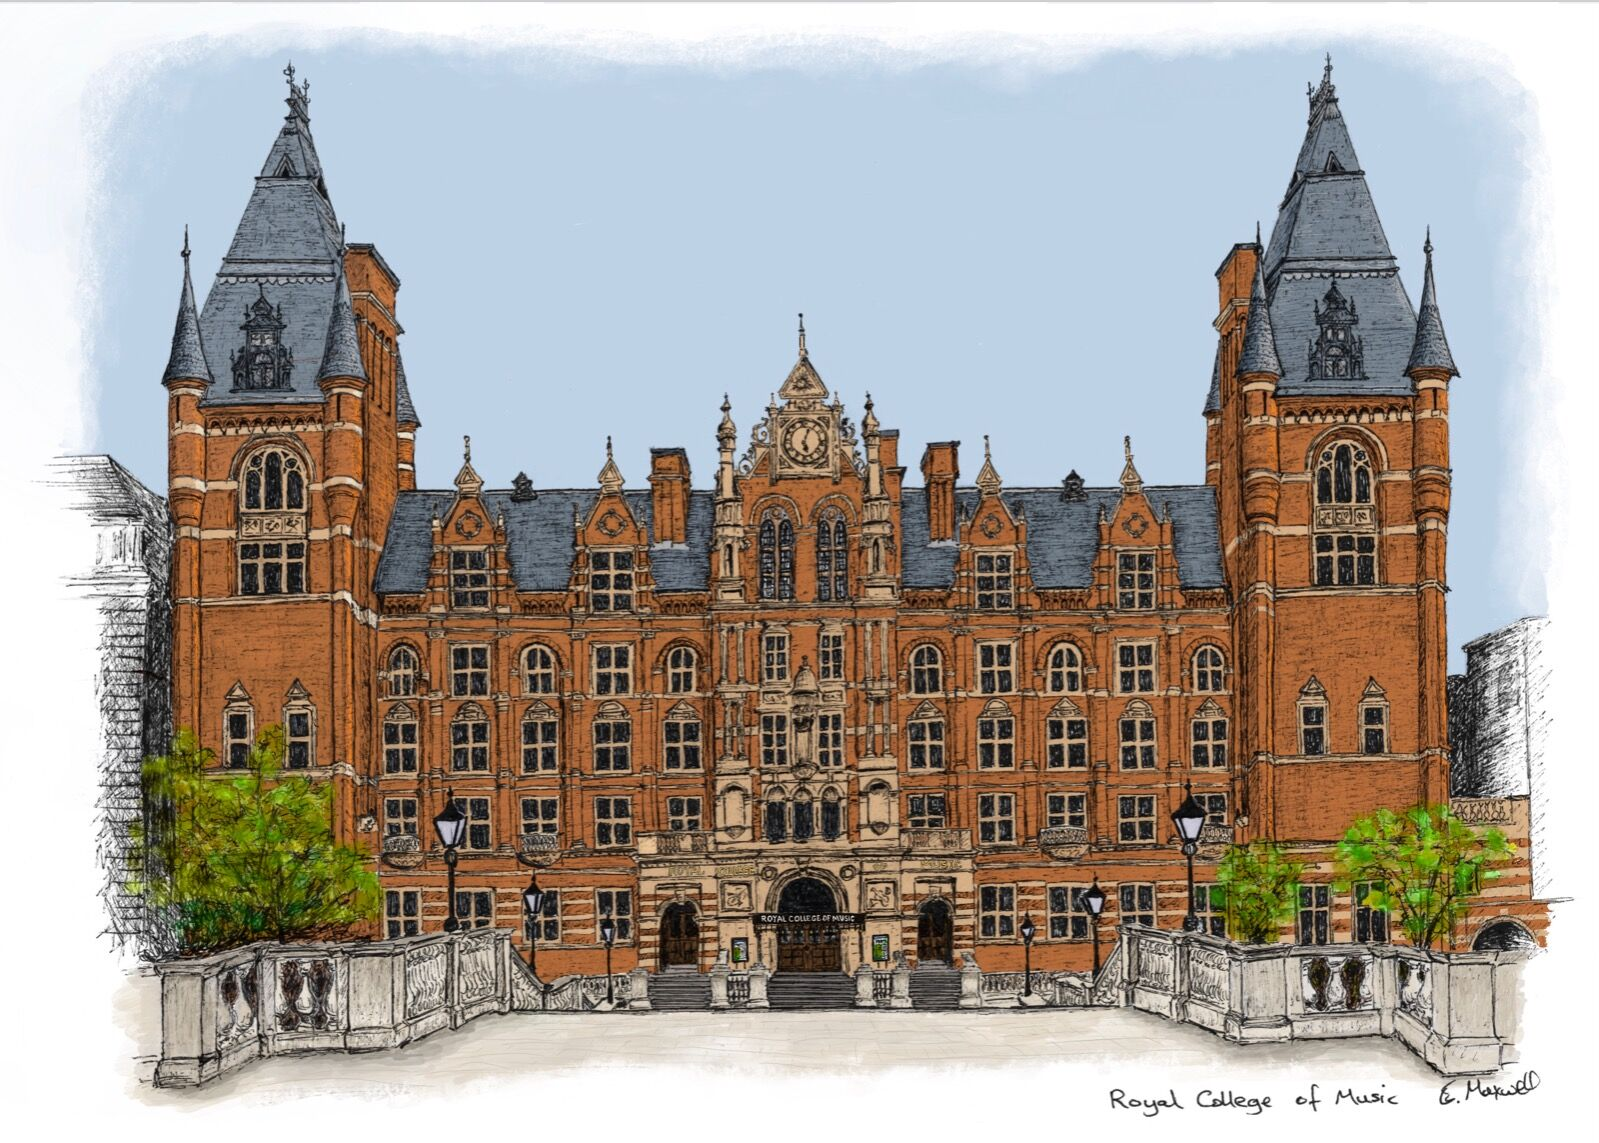 Royal College of Music (colour)